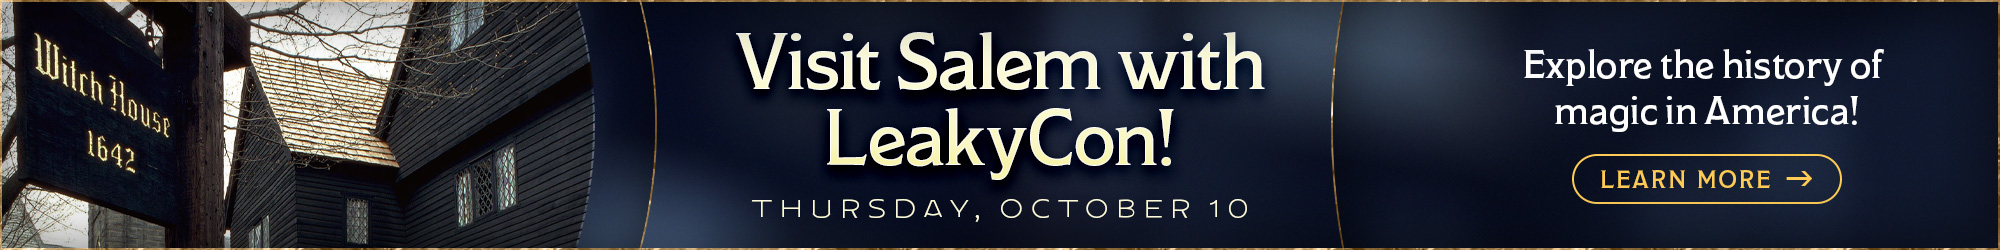 LeakyCon Salem Day Trip